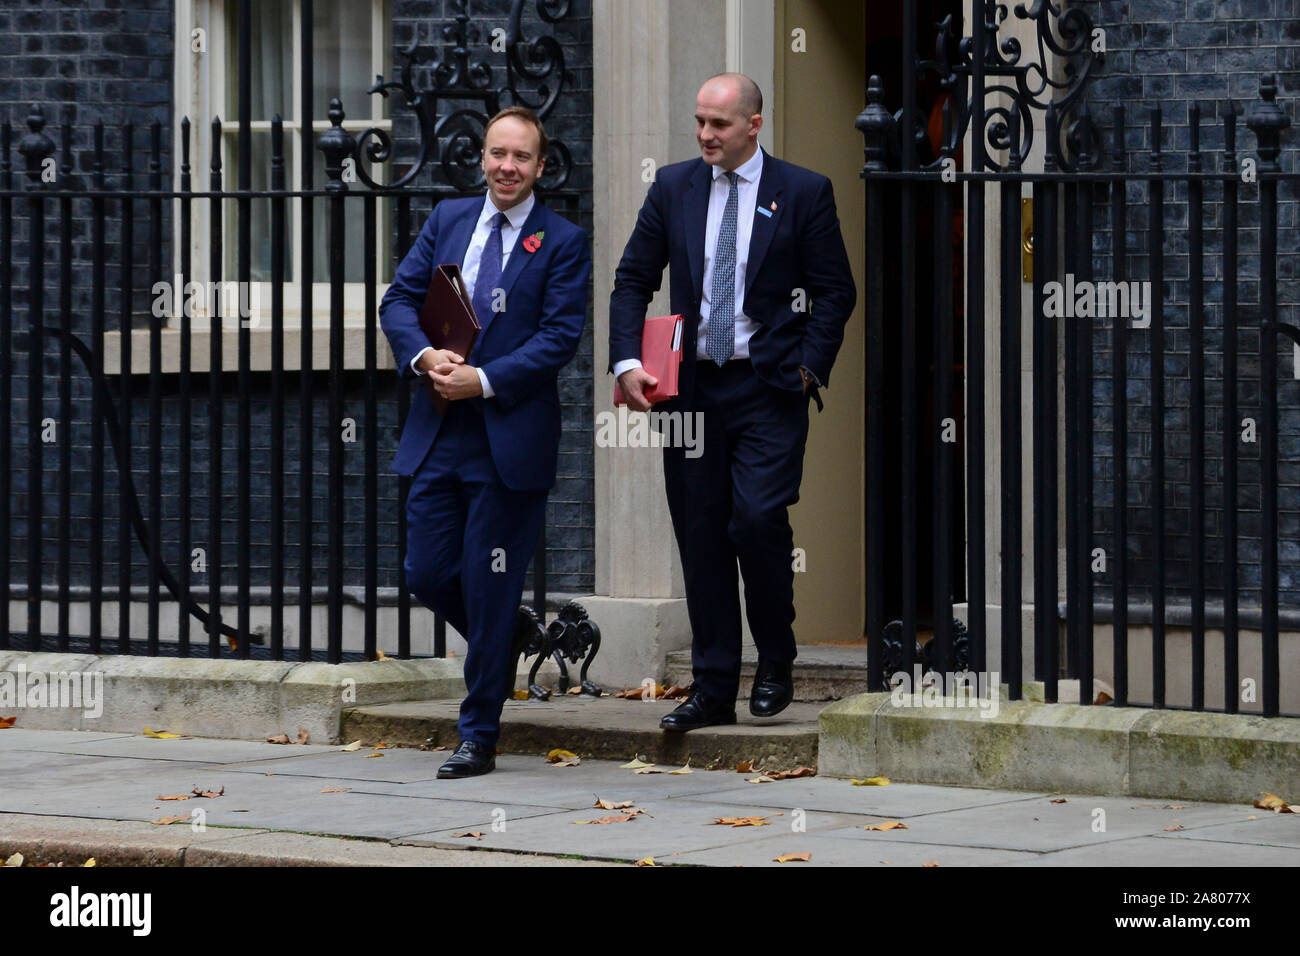 London, UK. 5th November 2019. Health Secretary Matt Hancock and  Minister for the Northern Powerhouse Jake Berry, leaving Downing Street after a Cabinet Meeting. Claire Doherty/Alamy Live News. Stock Photo